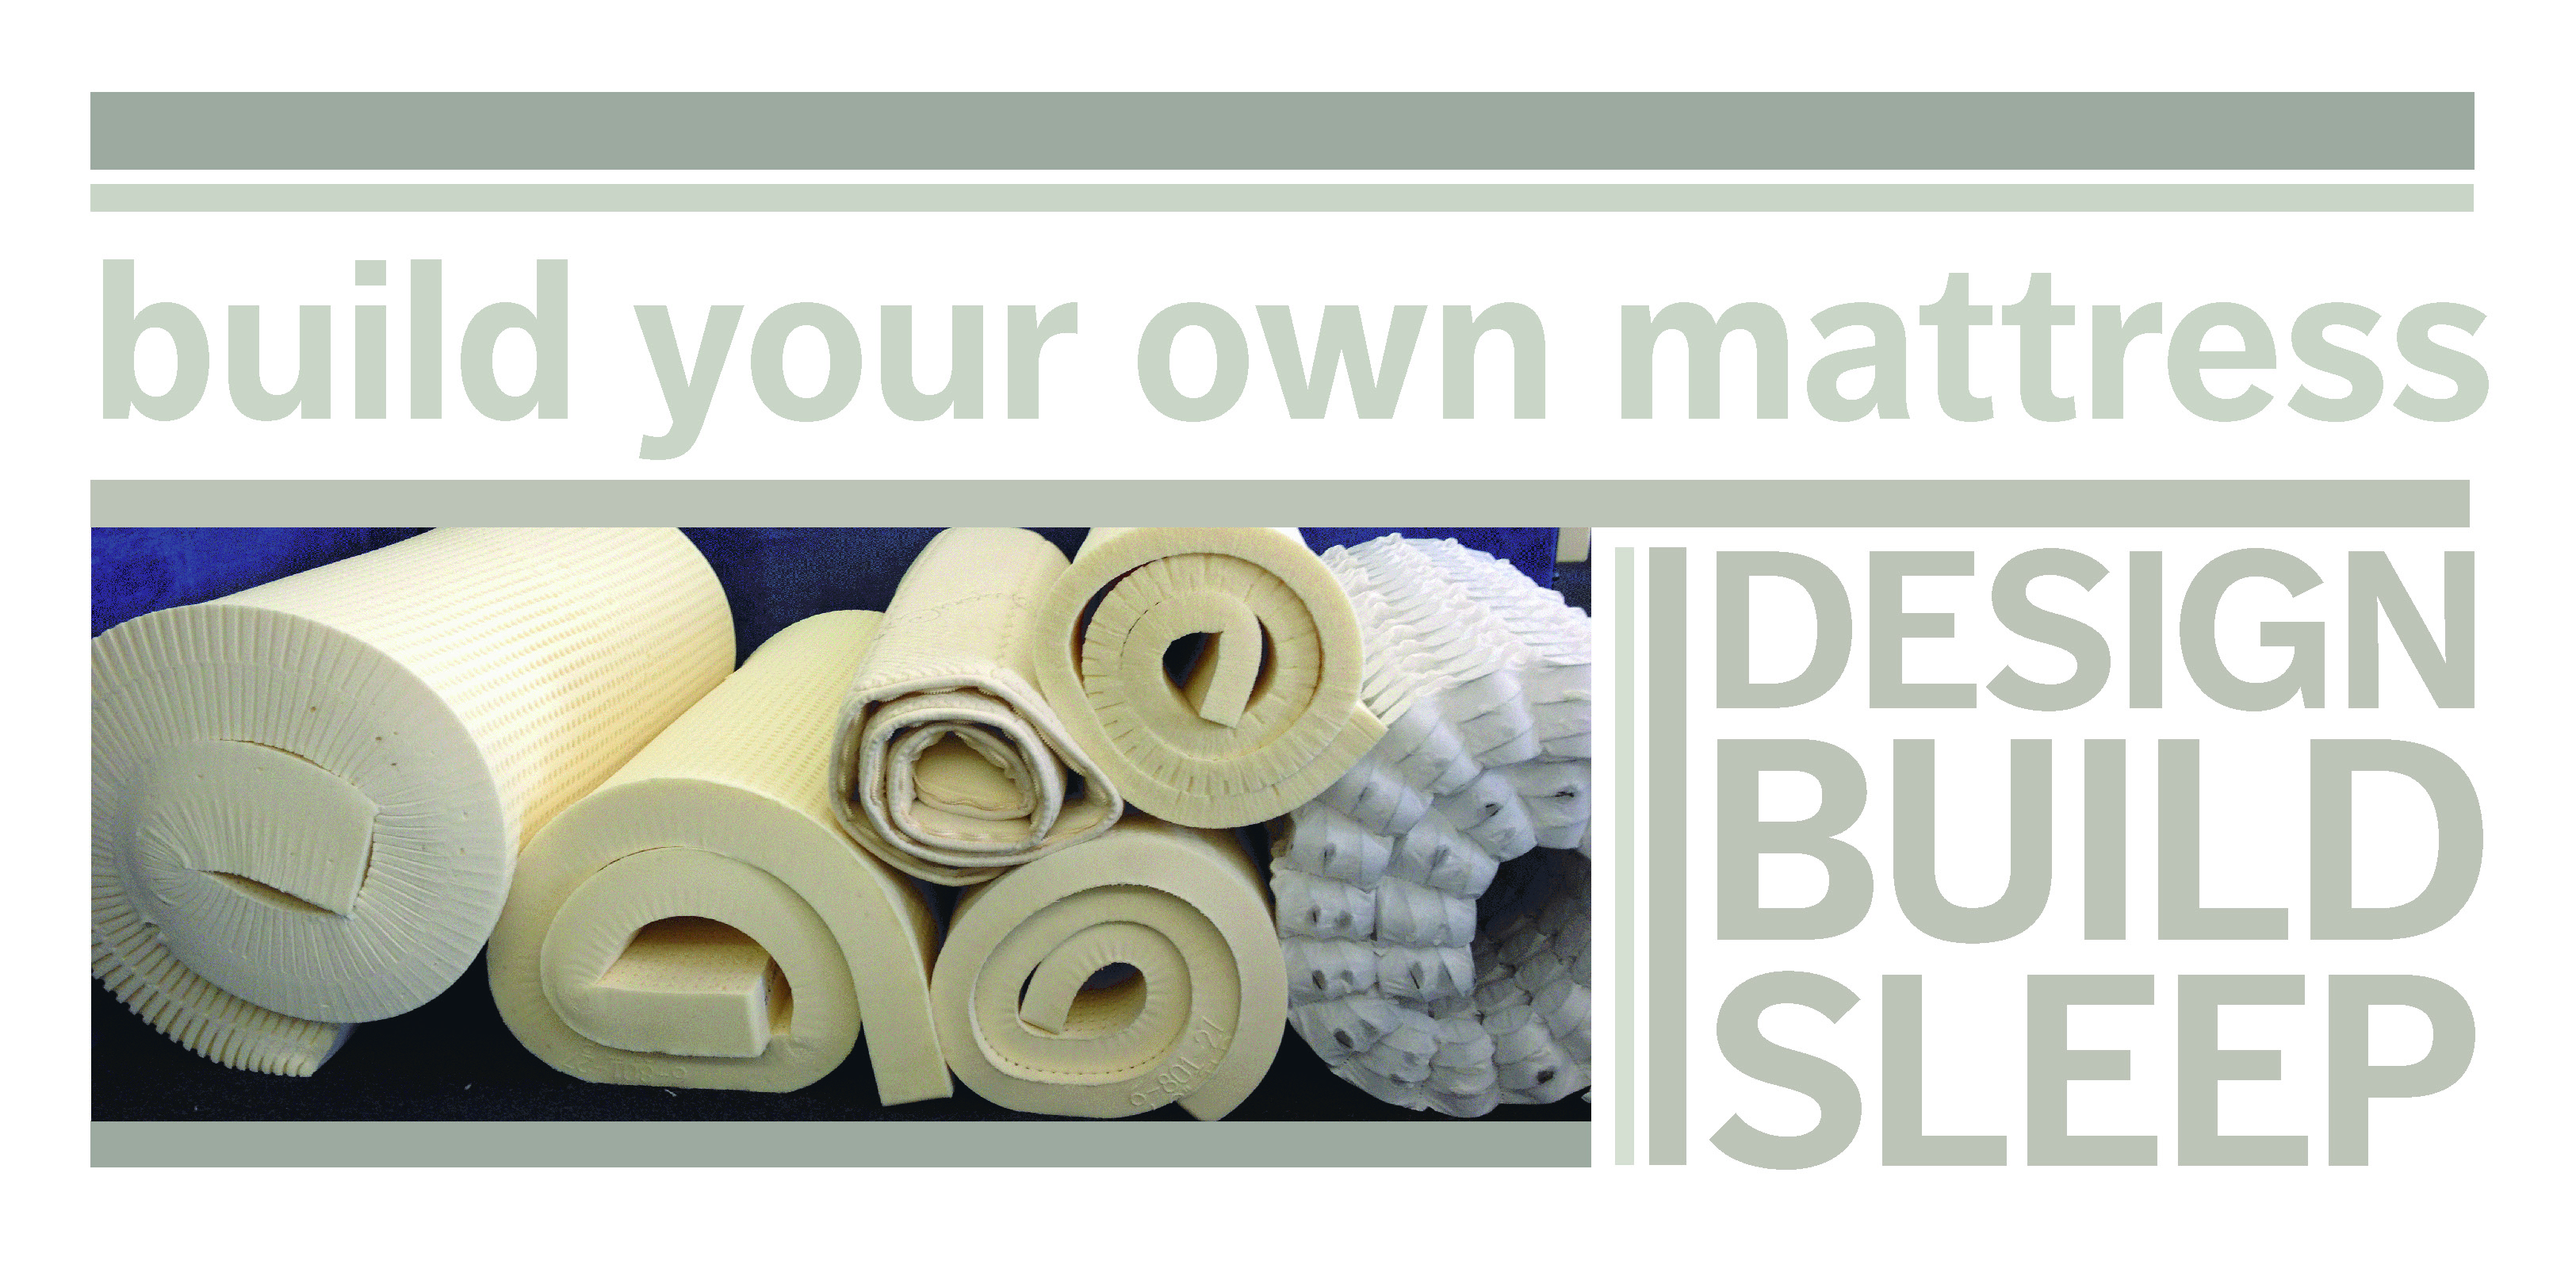 build your own mattress